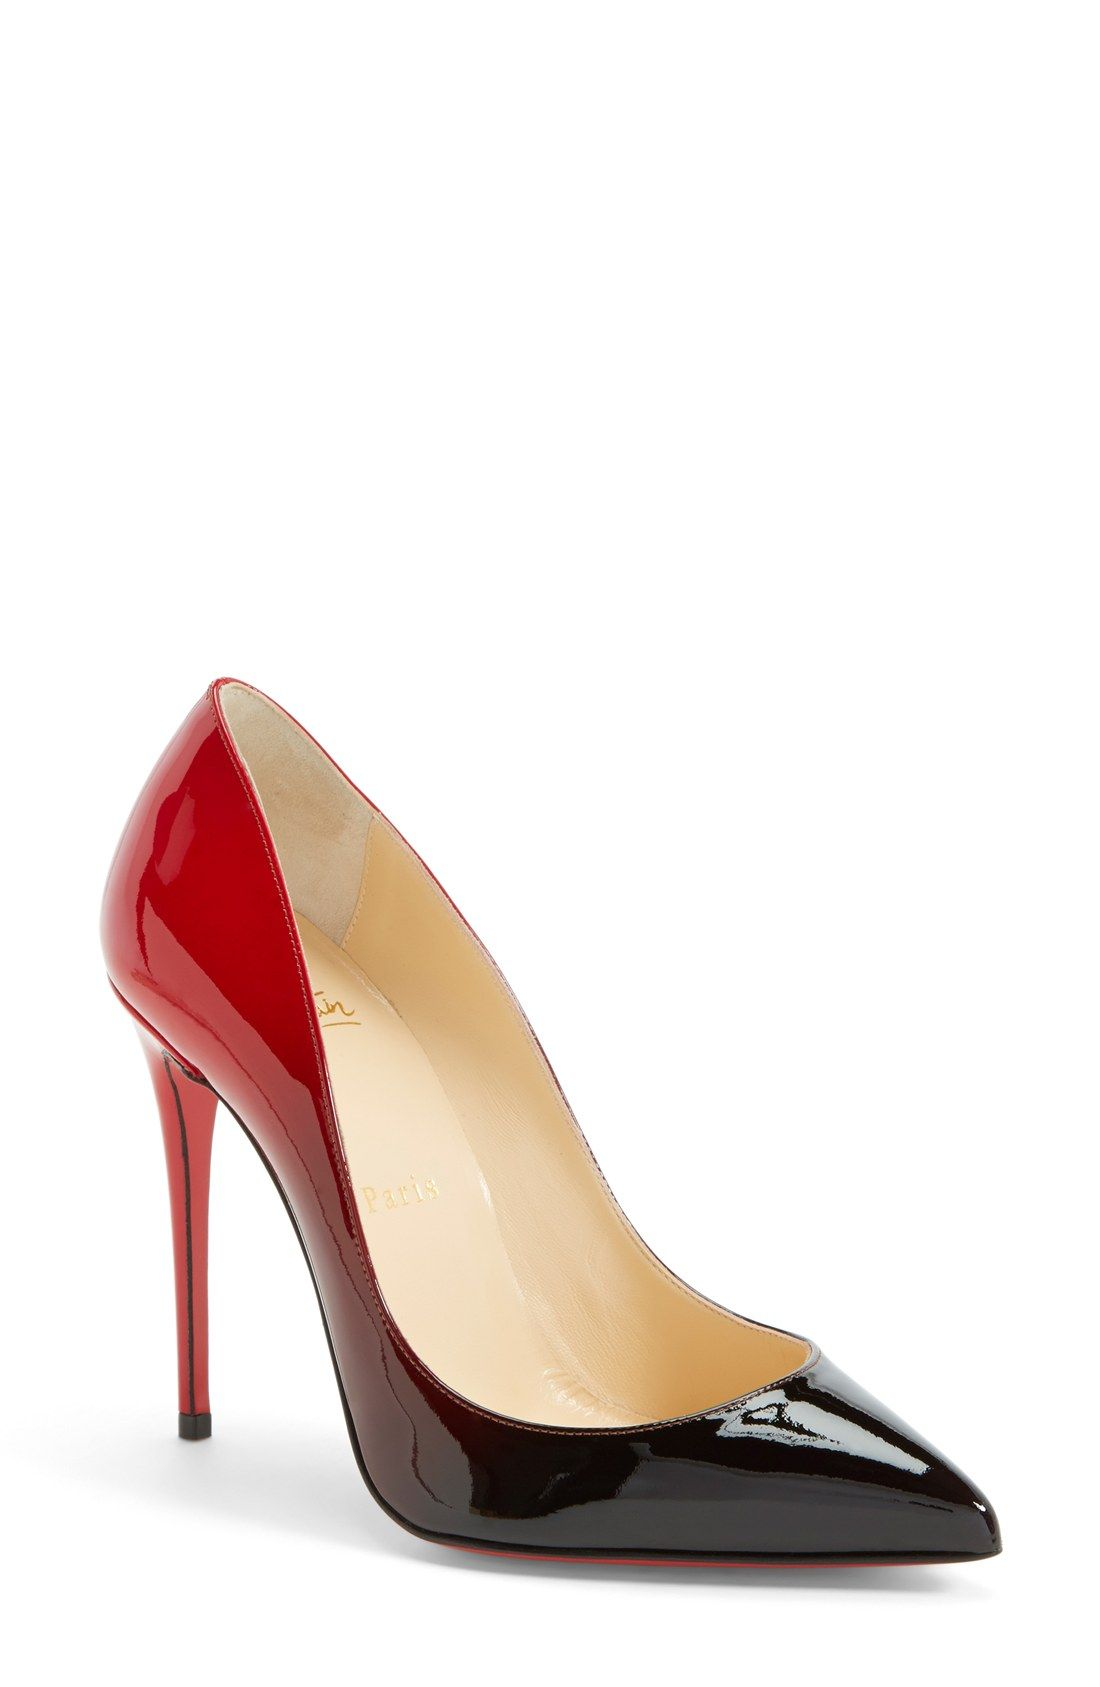 43f5dfff73cc Pigalle Follies Dégradé Pointy Toe Pump Christian Louboutin ...